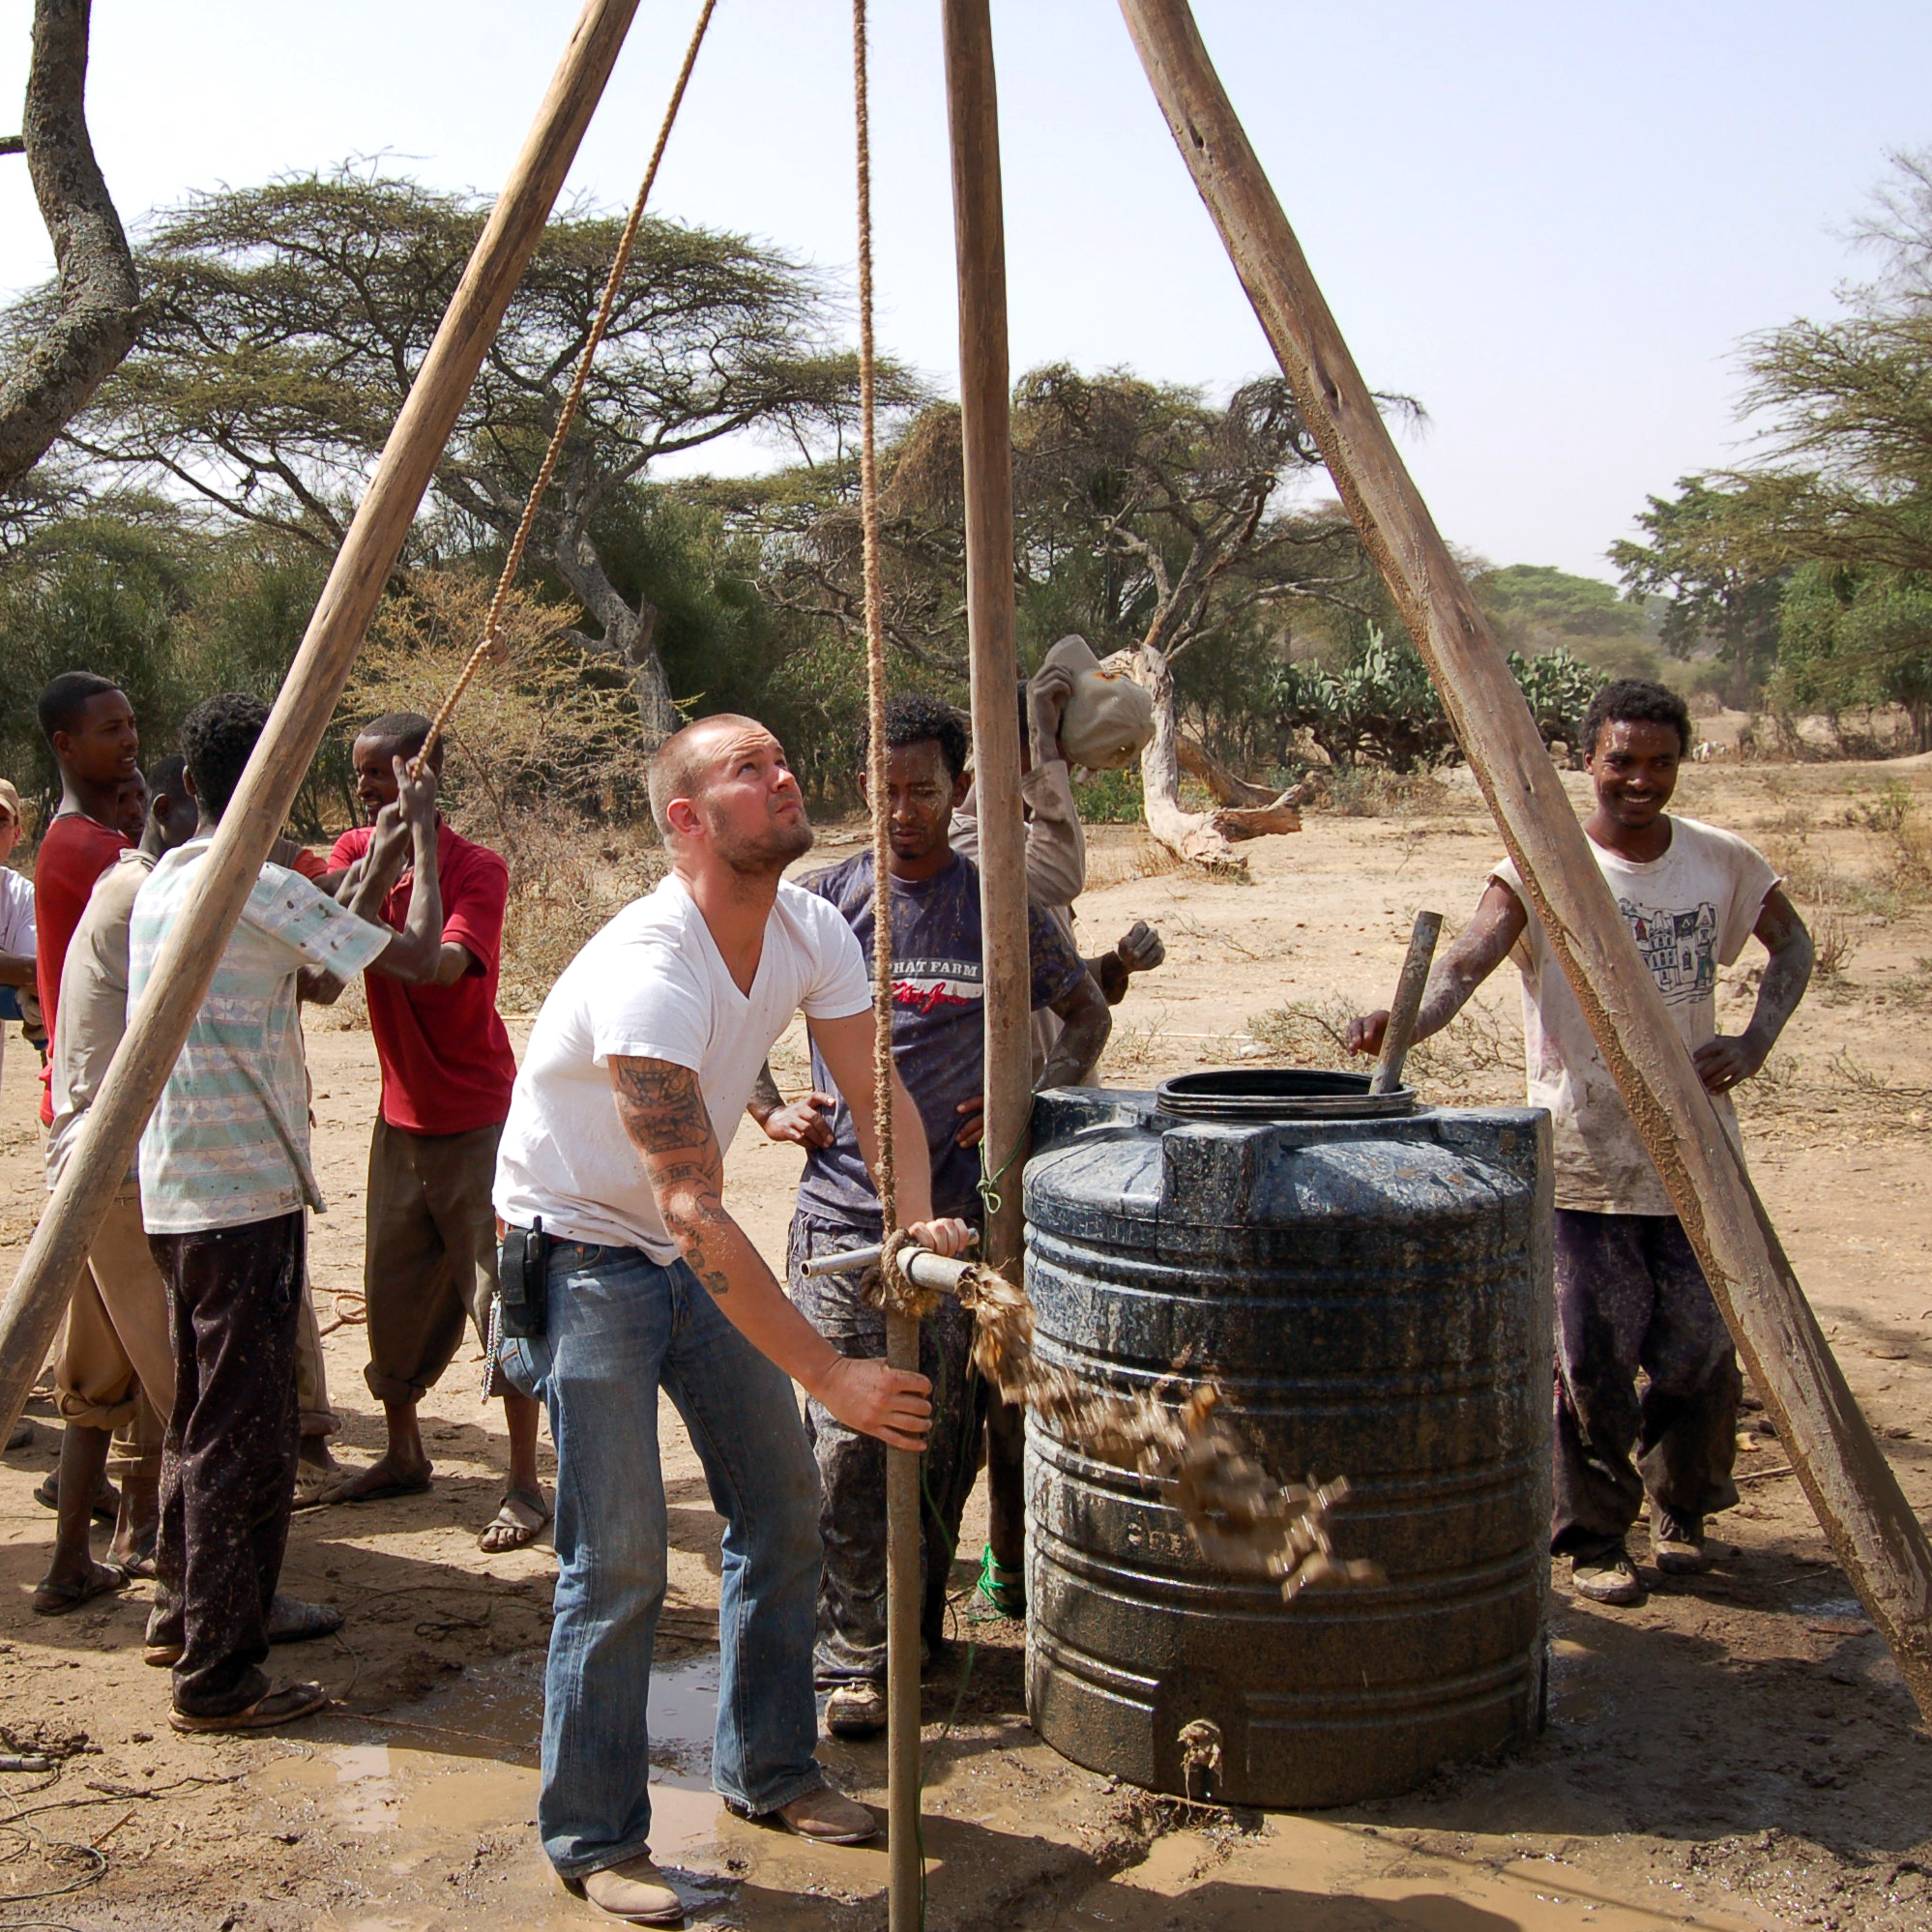 The Water to Wine Machine hoax was designed to bring attention to Wine to Water, an international water charity. The group's president, Doc Hendley, is pictured above, center, in Ethiopia.